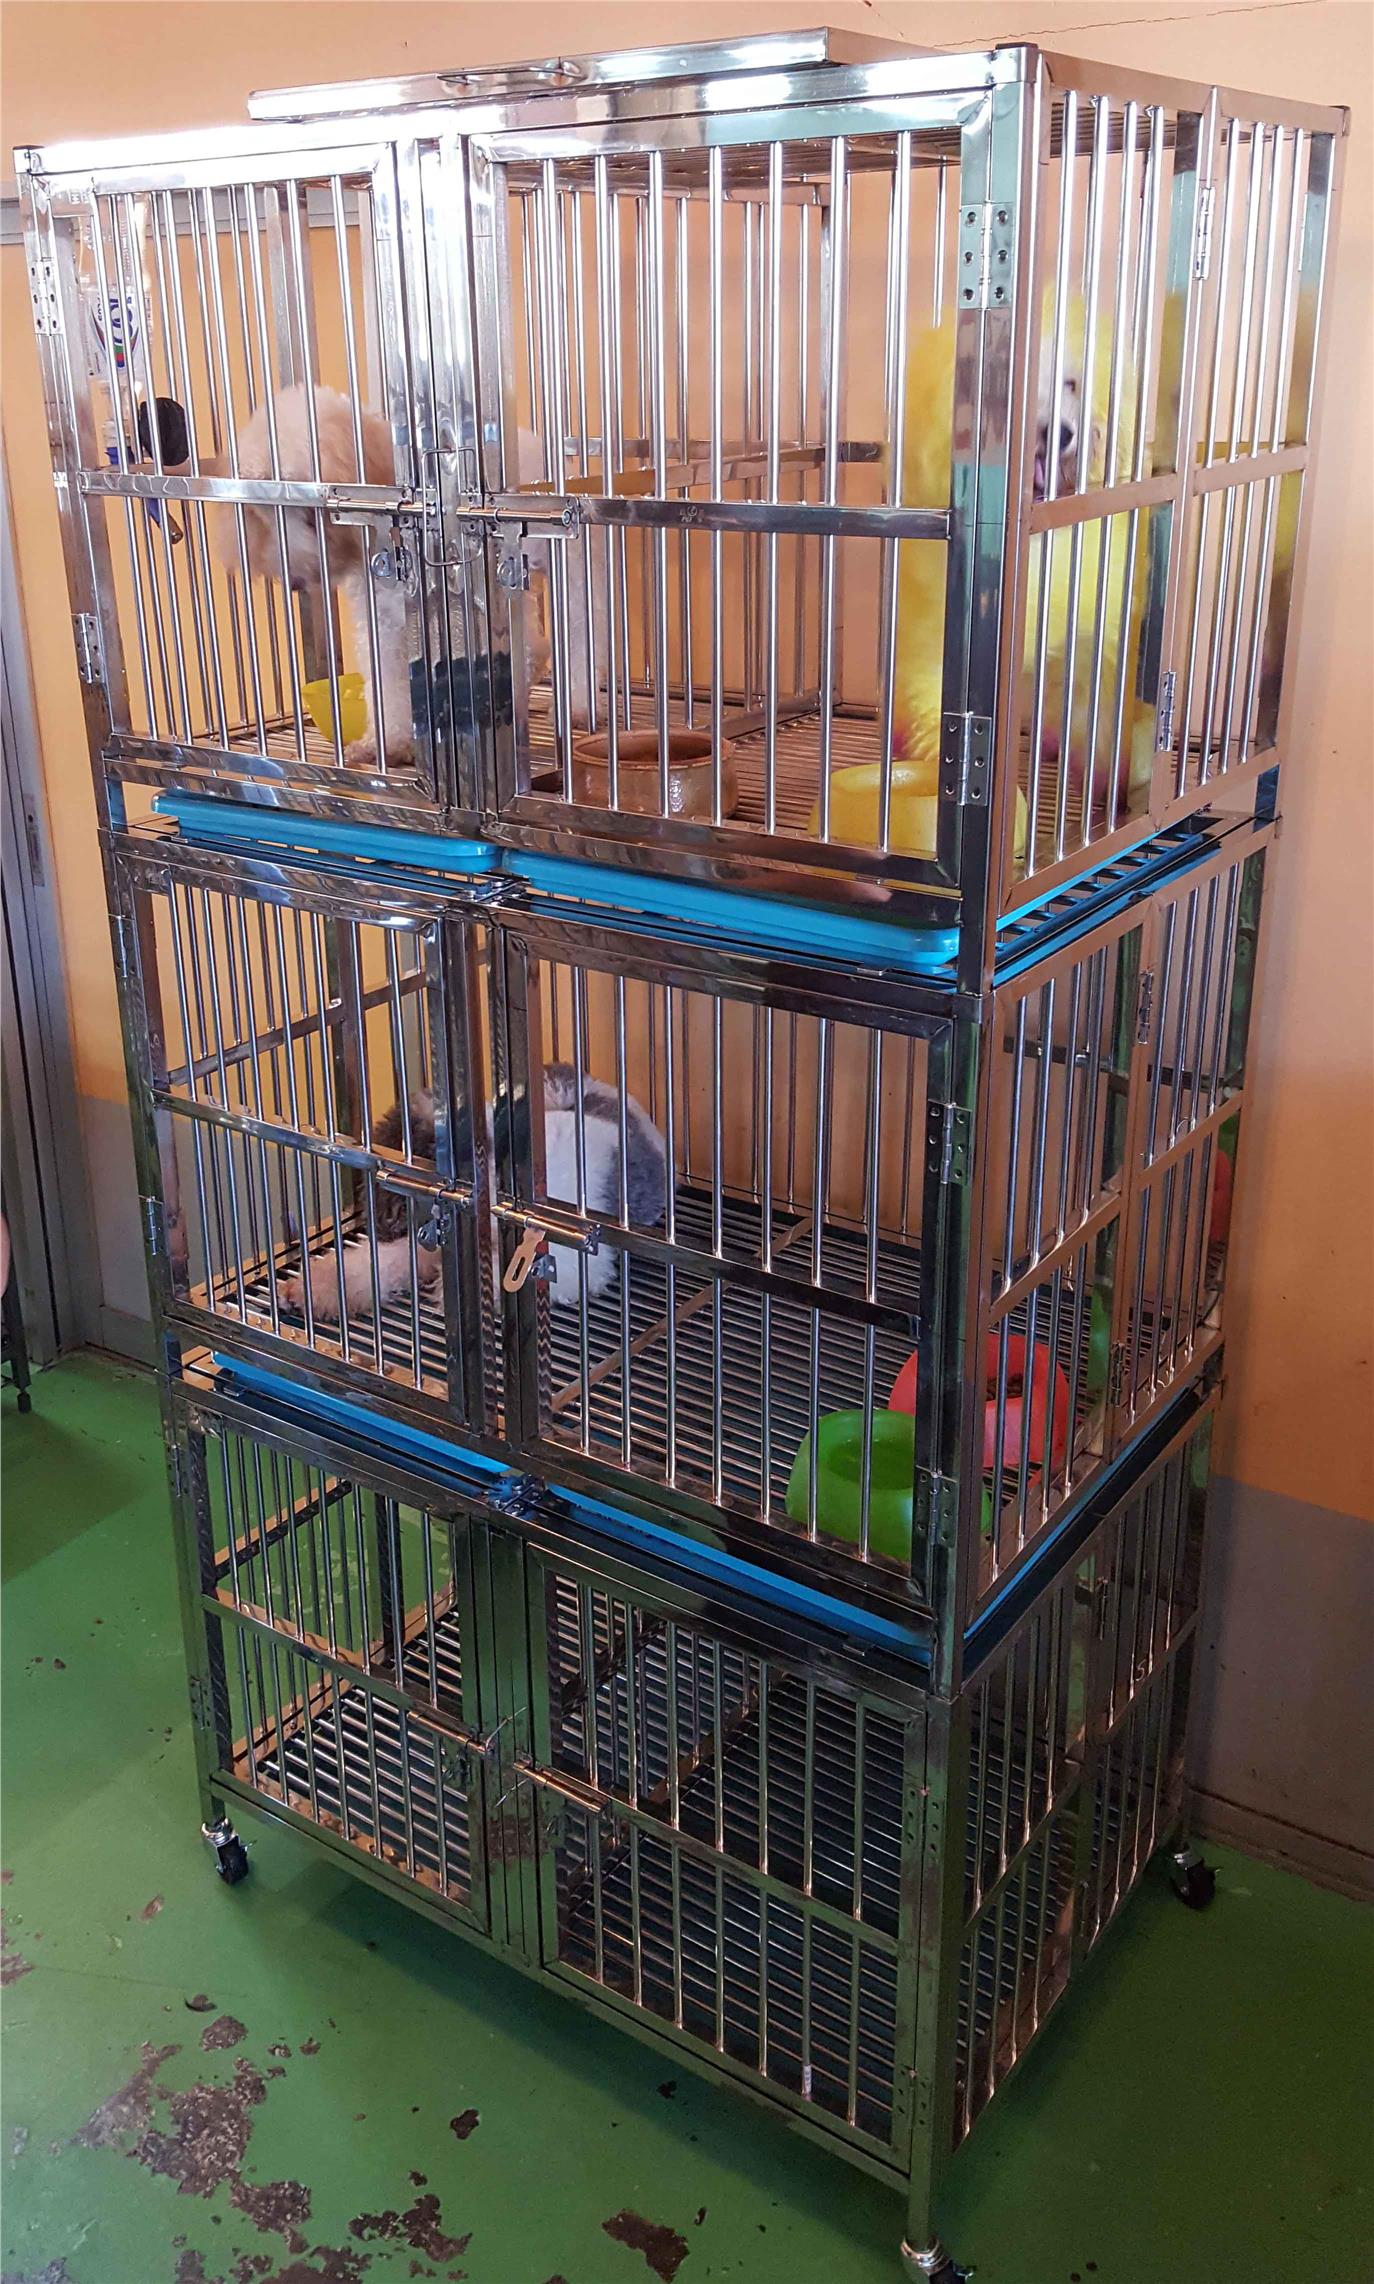 cage for pet dog 6 door stainless steel 110x75x200